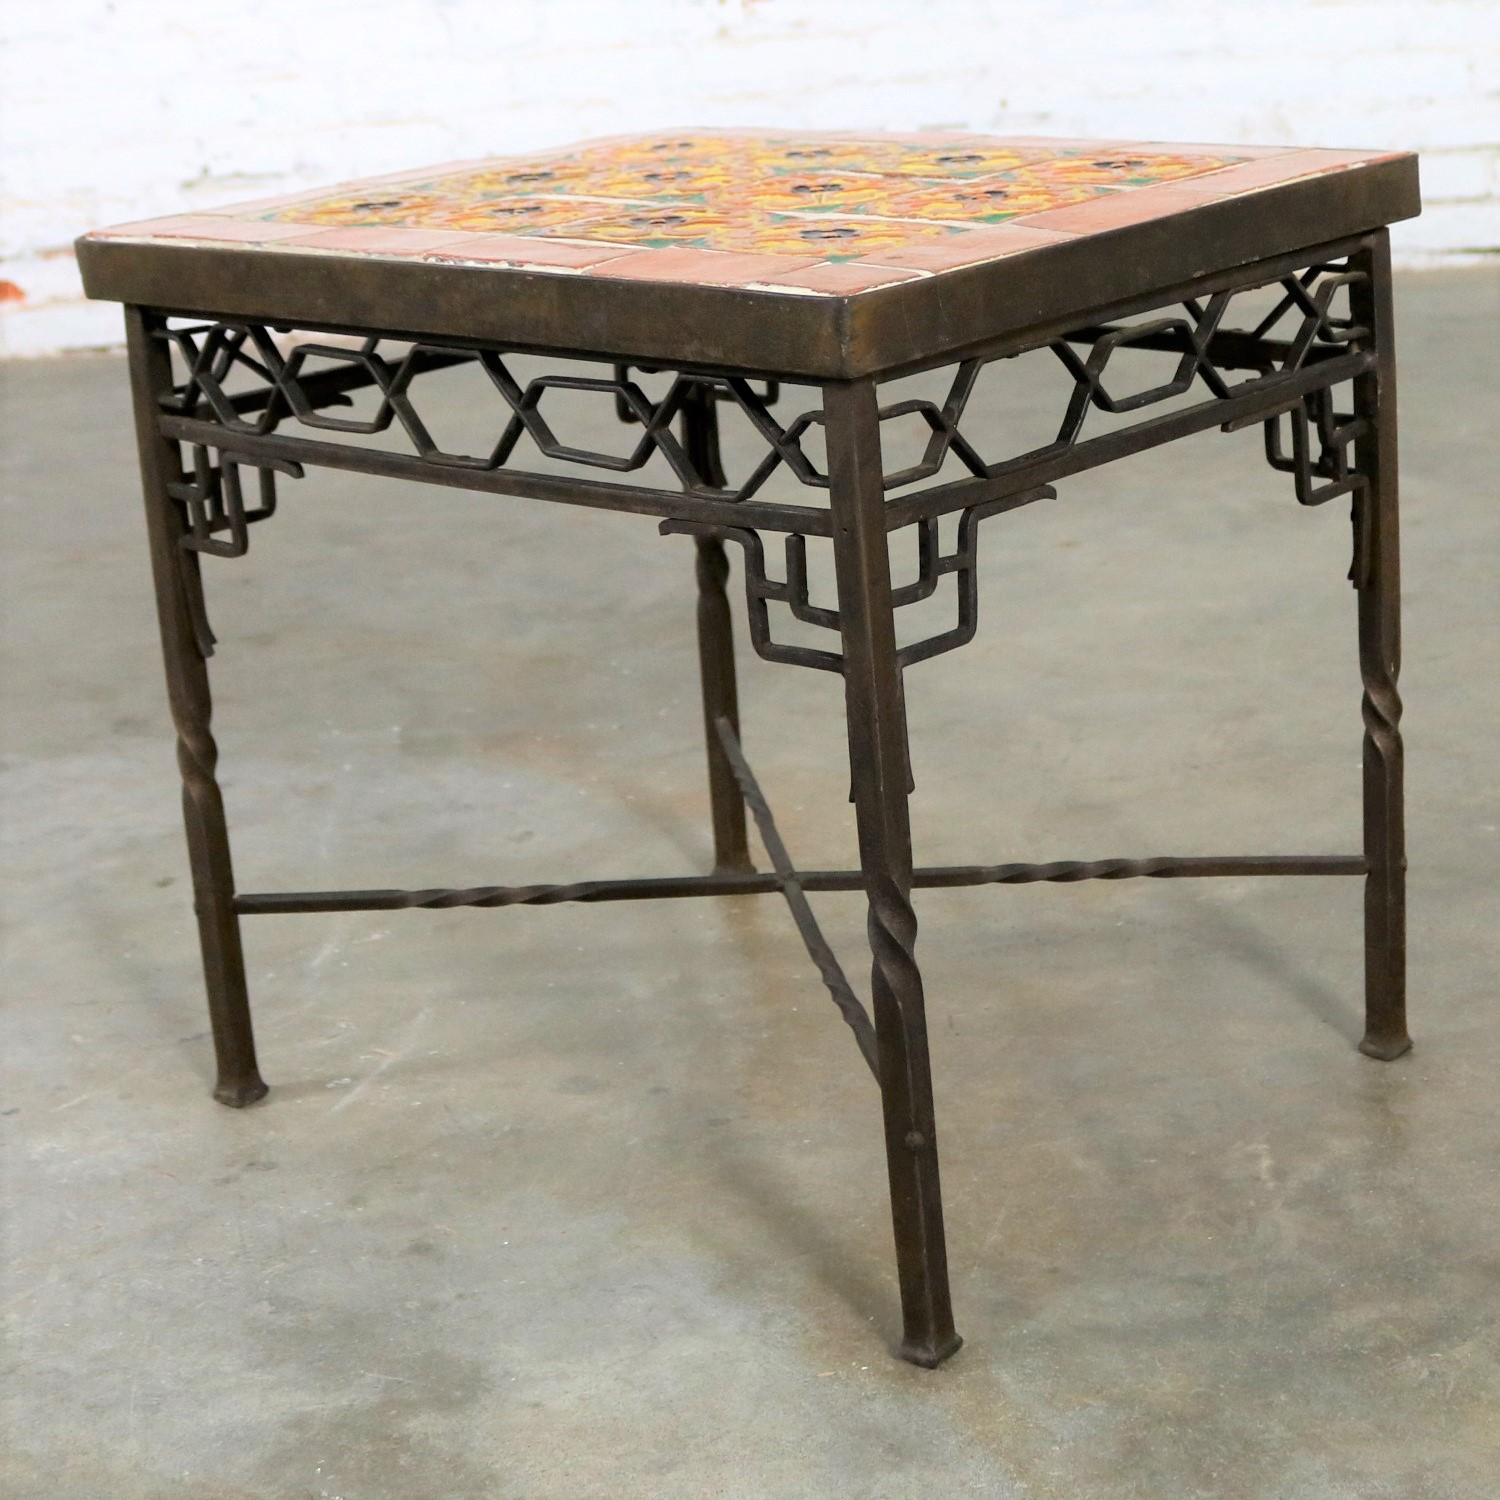 Beau Art Deco Wrought Iron And Tile Side Table California Style Tiles